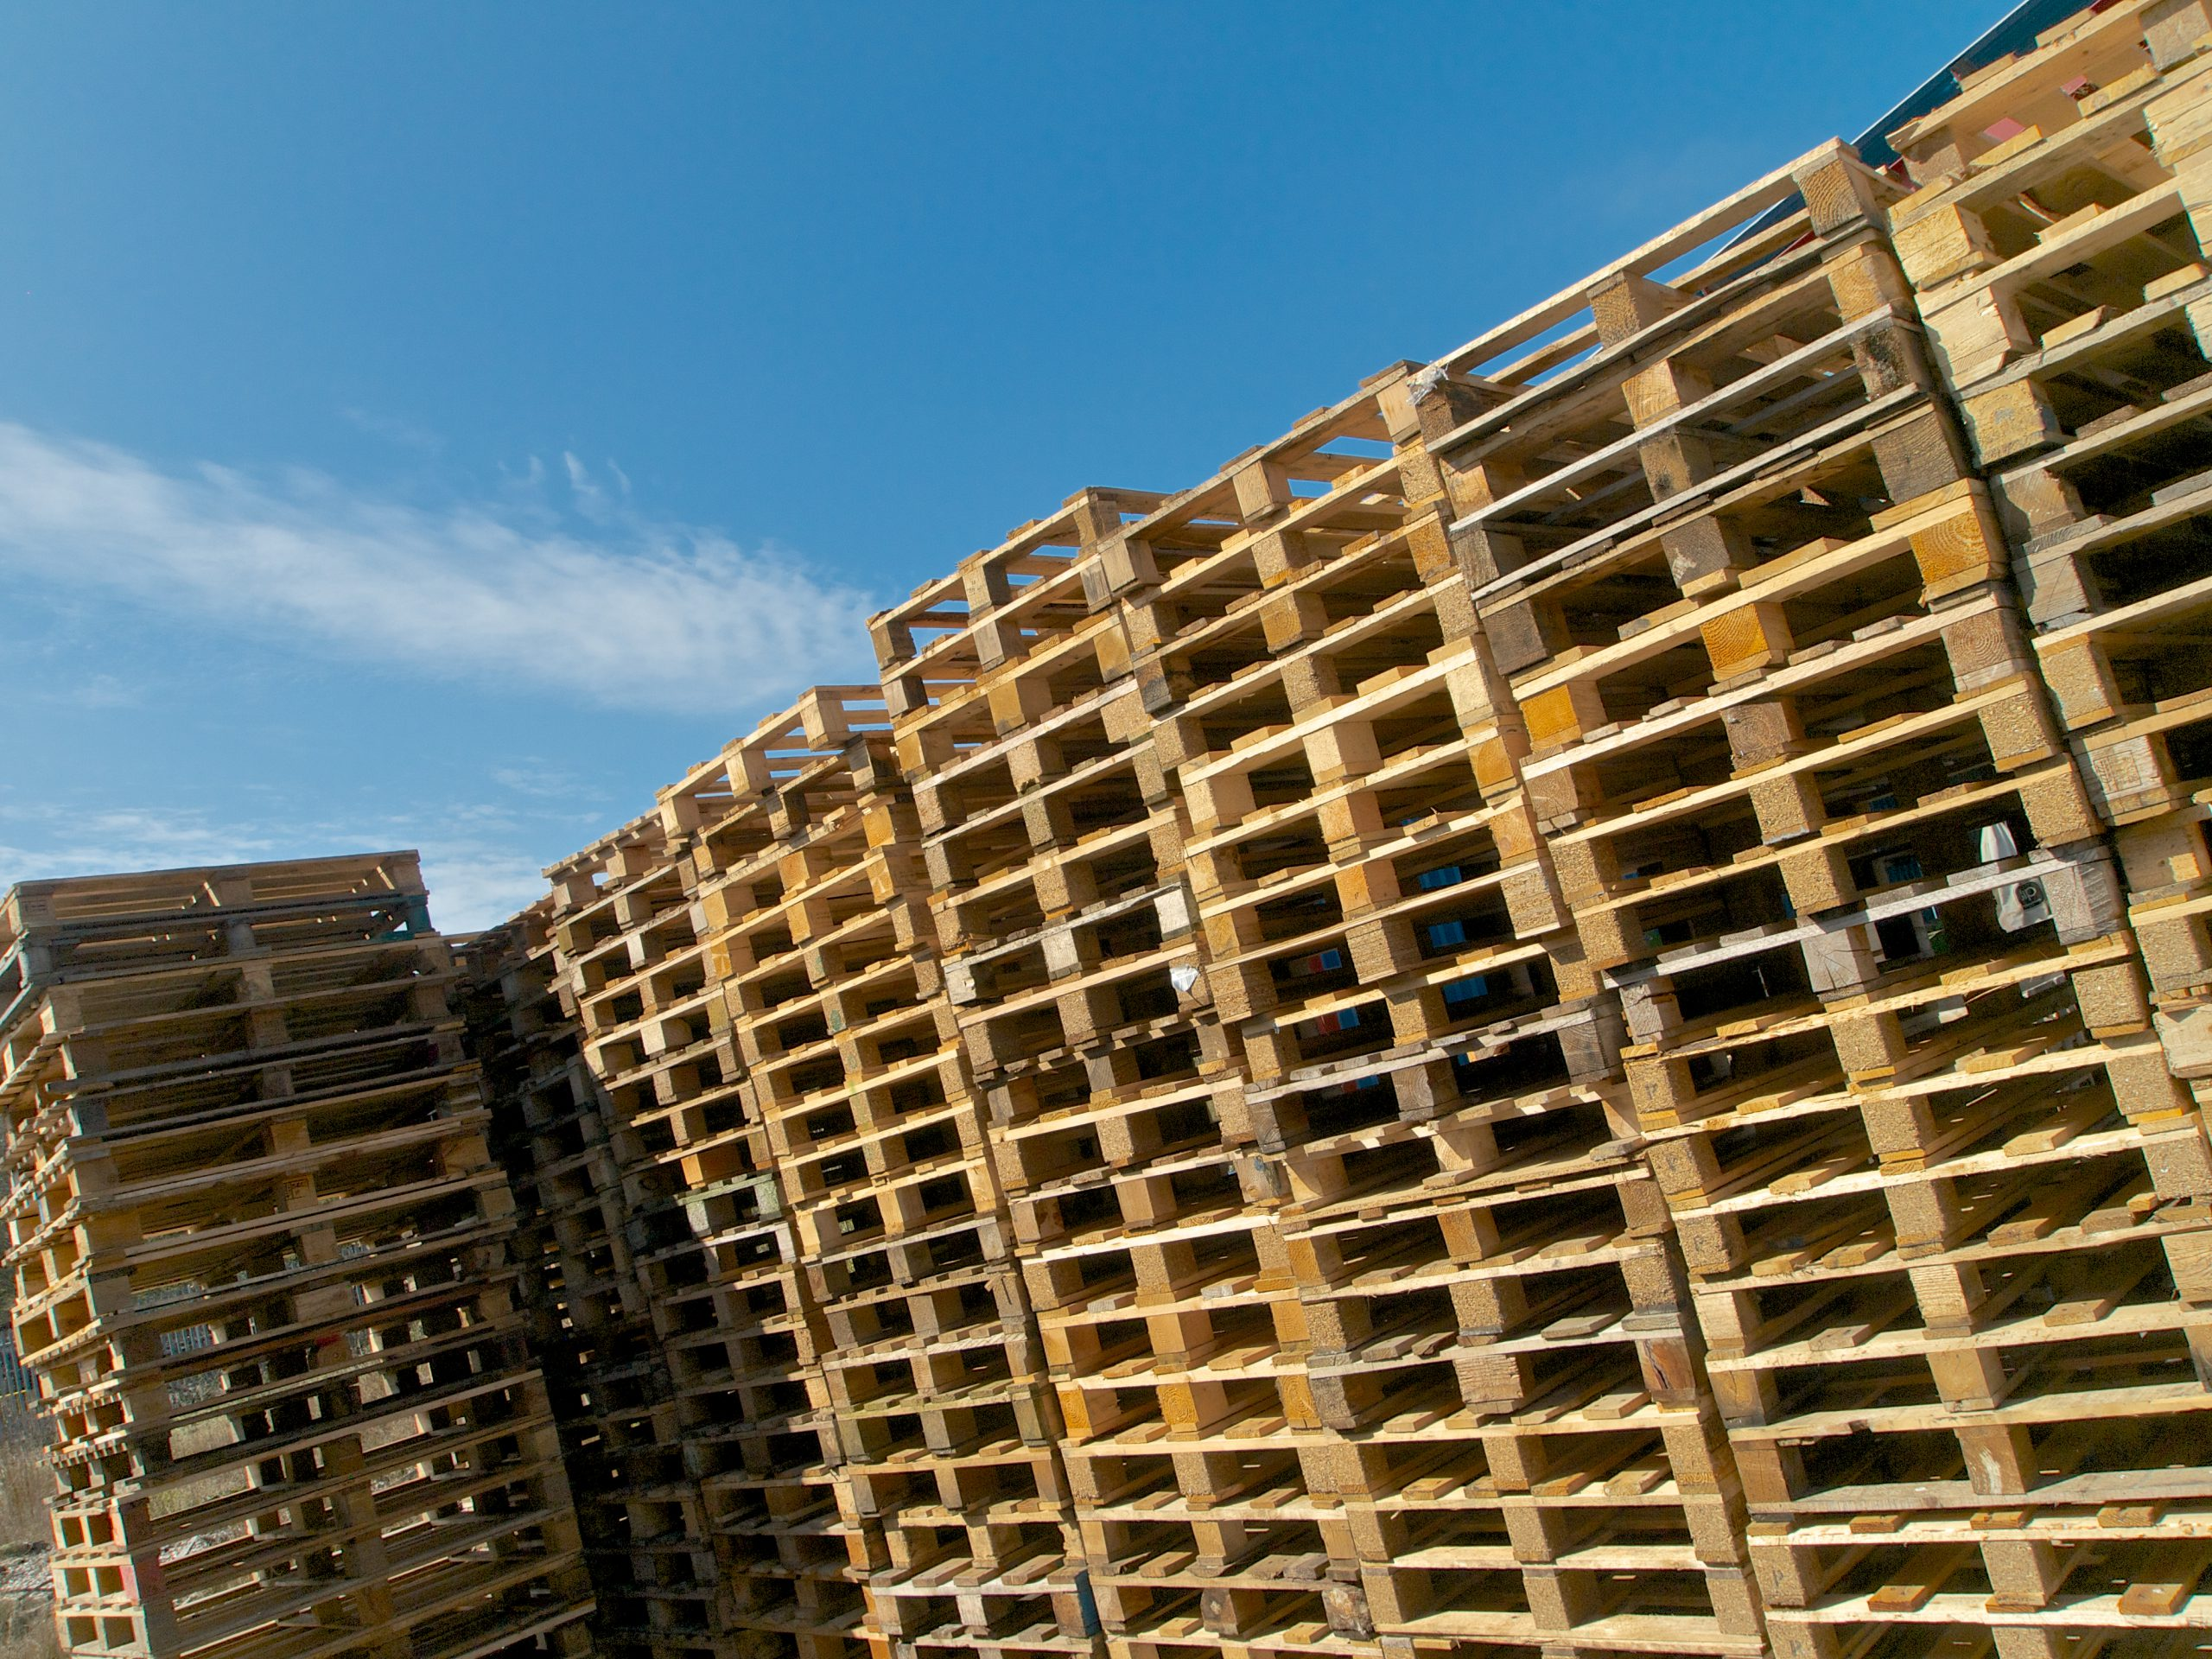 Stacks of used wooden pallets The Log People Shropshire